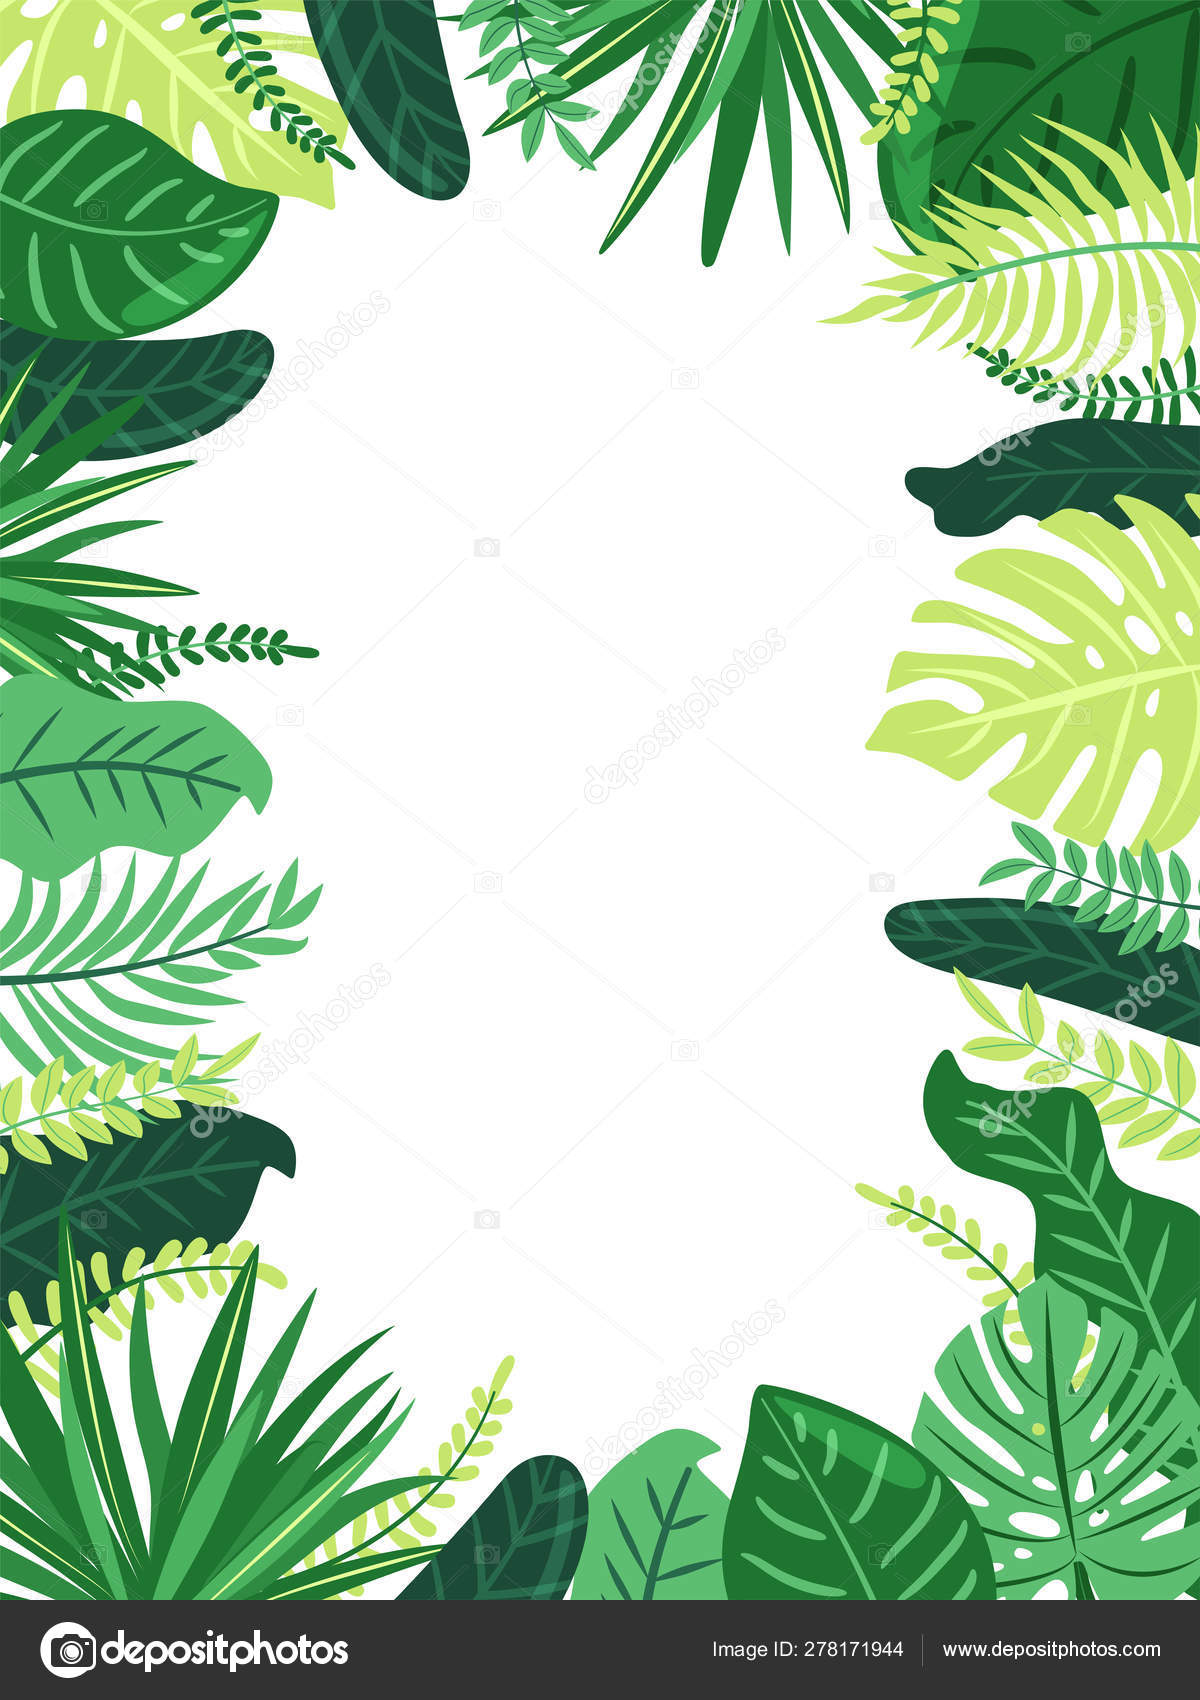 Frame Of Tropical Leaves Illustration With Foliage Of Exotic Jungle Plants Stock Vector C Cocoart Ua 278171944 Download transparent tropical leaves png for free on pngkey.com. frame of tropical leaves illustration with foliage of exotic jungle plants stock vector c cocoart ua 278171944